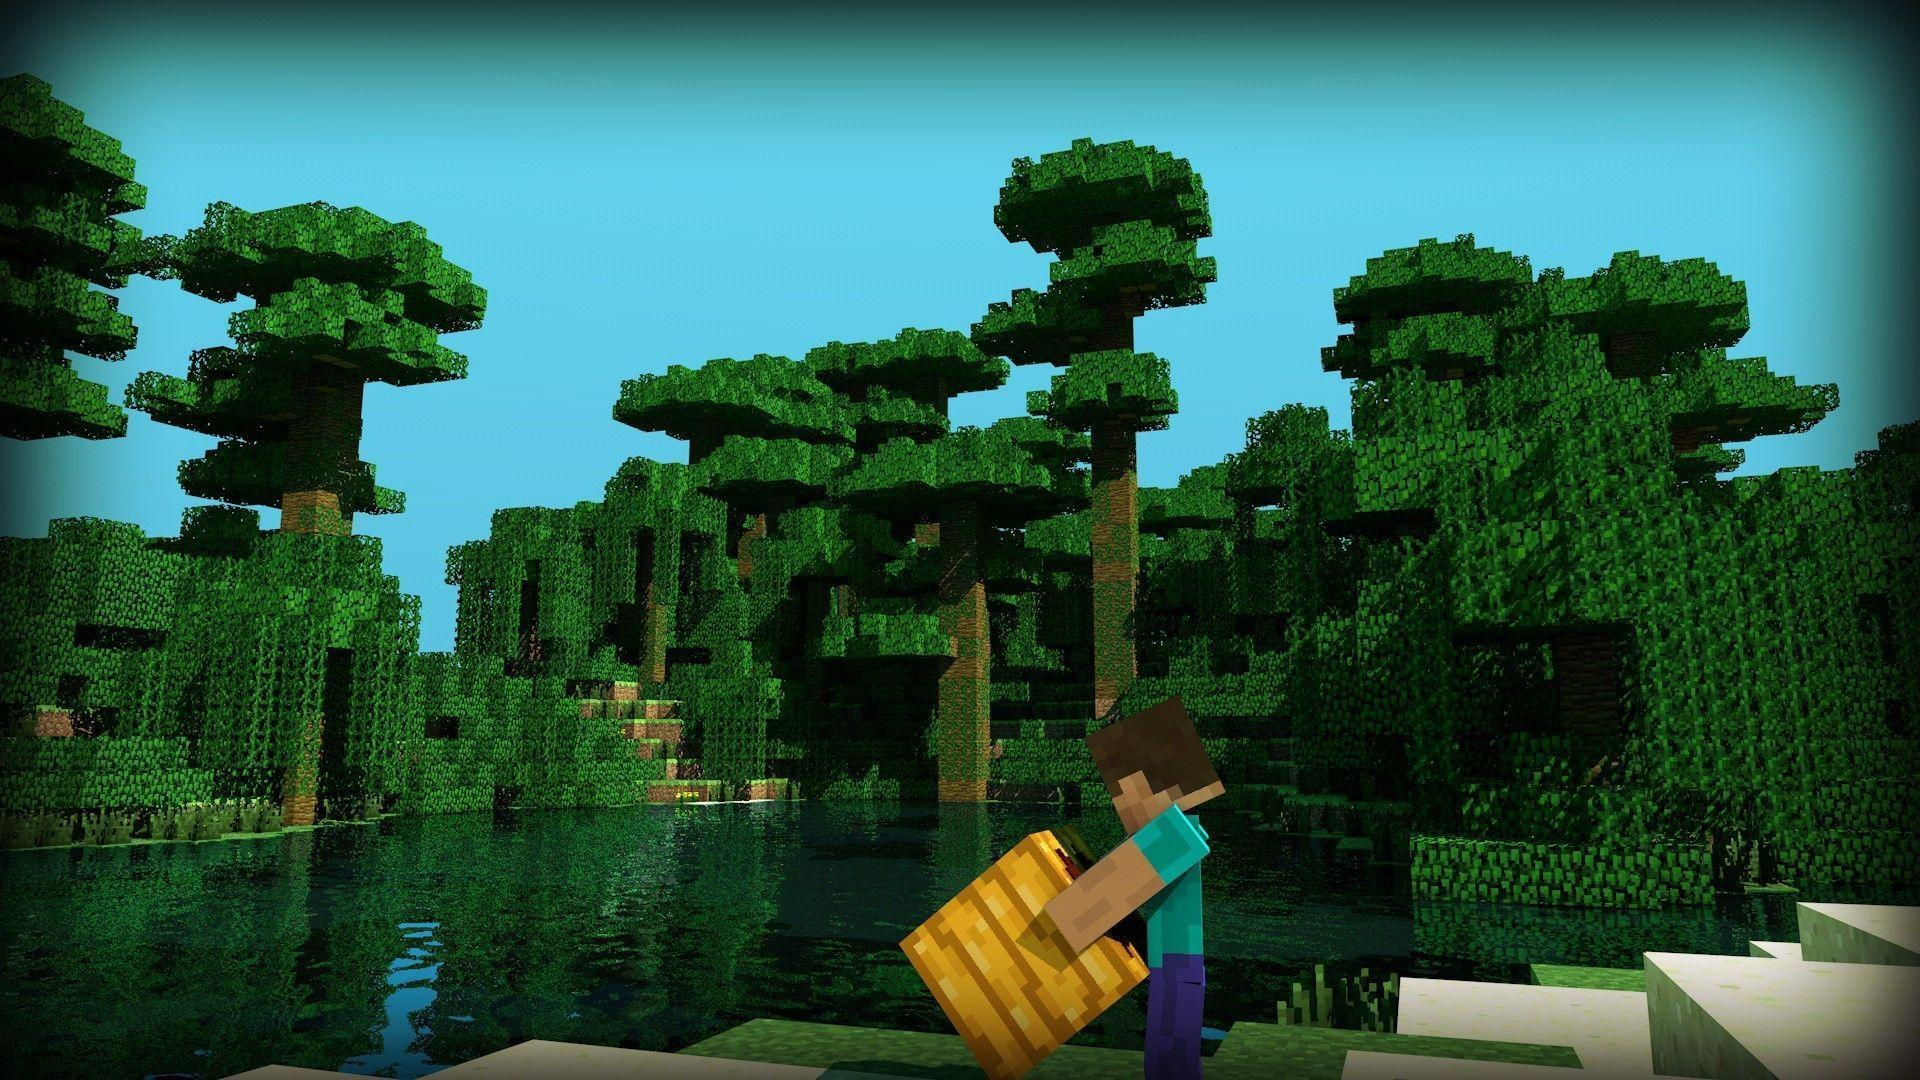 minecraft 2560x1440 wallpaper wwwimgkidcom the image